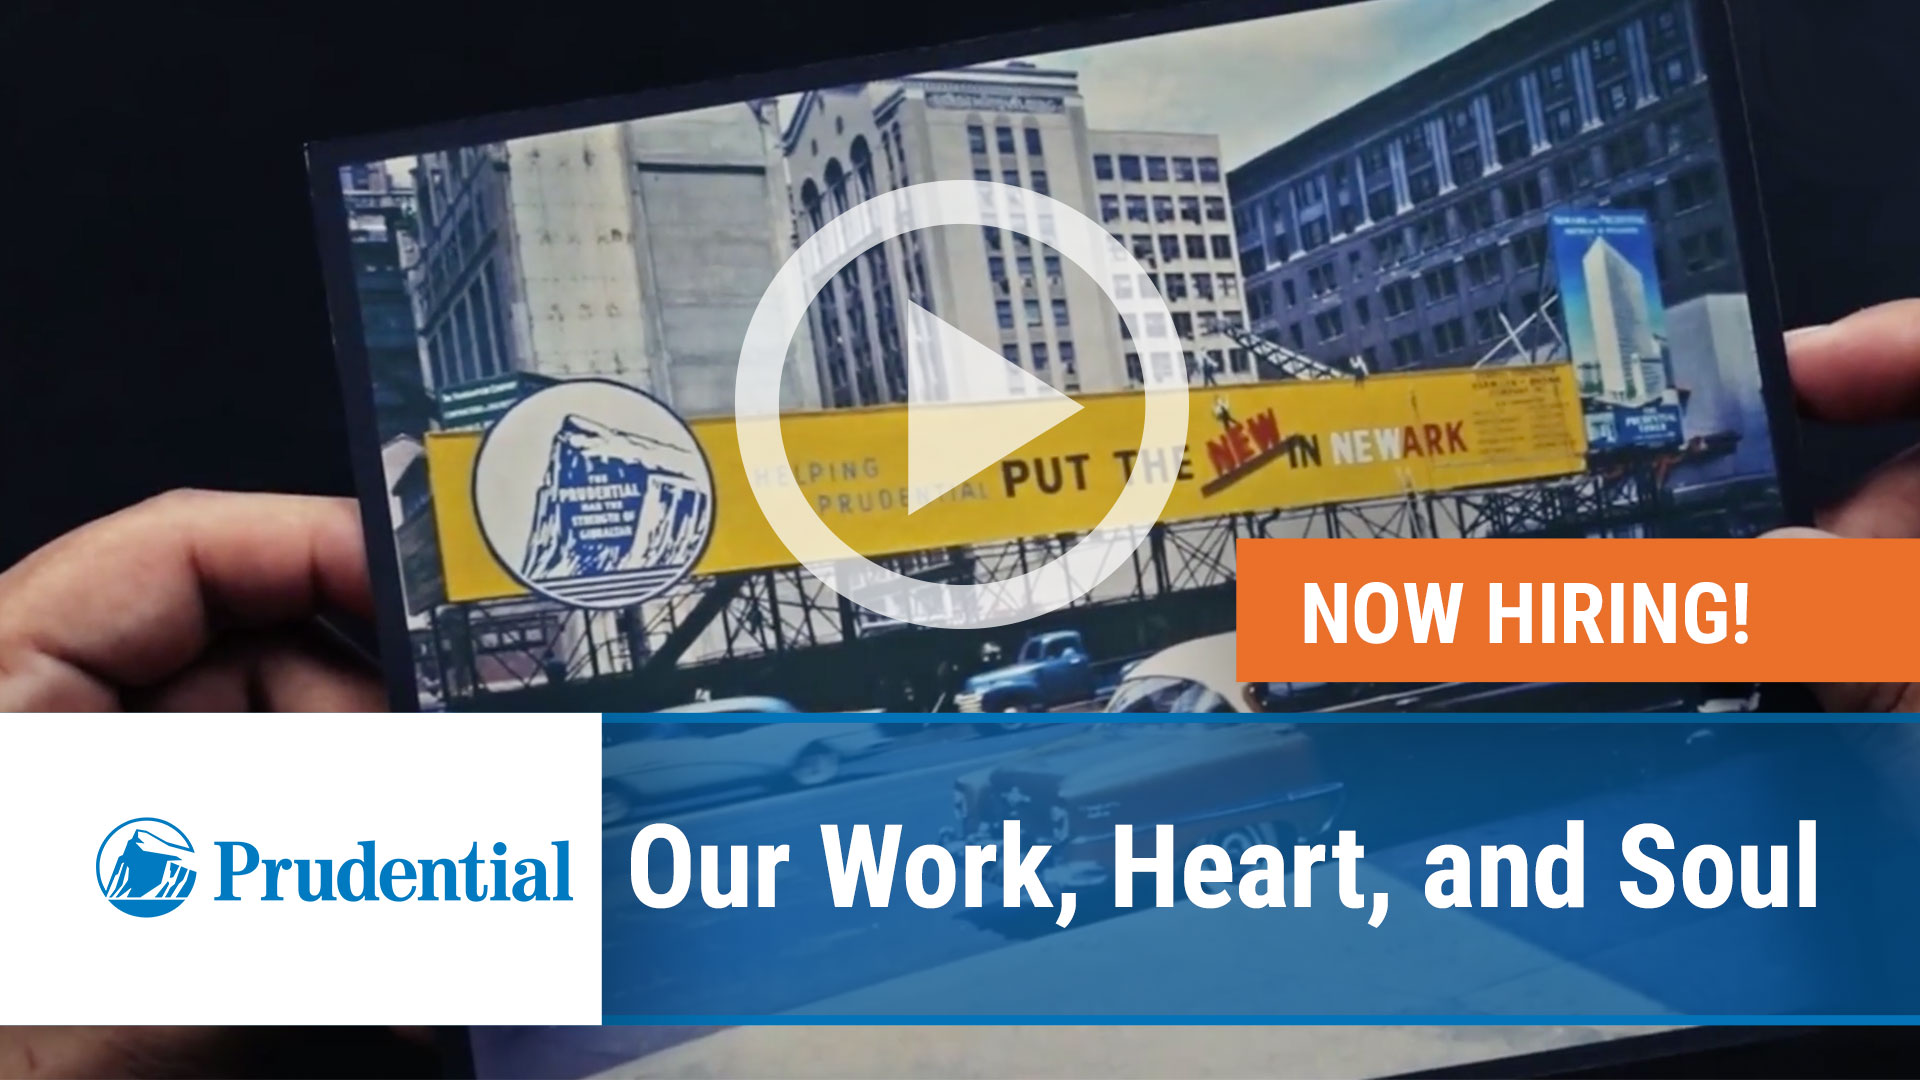 Watch our careers video for available job opening Our Work, Heart, and Soul in Multiple Locations